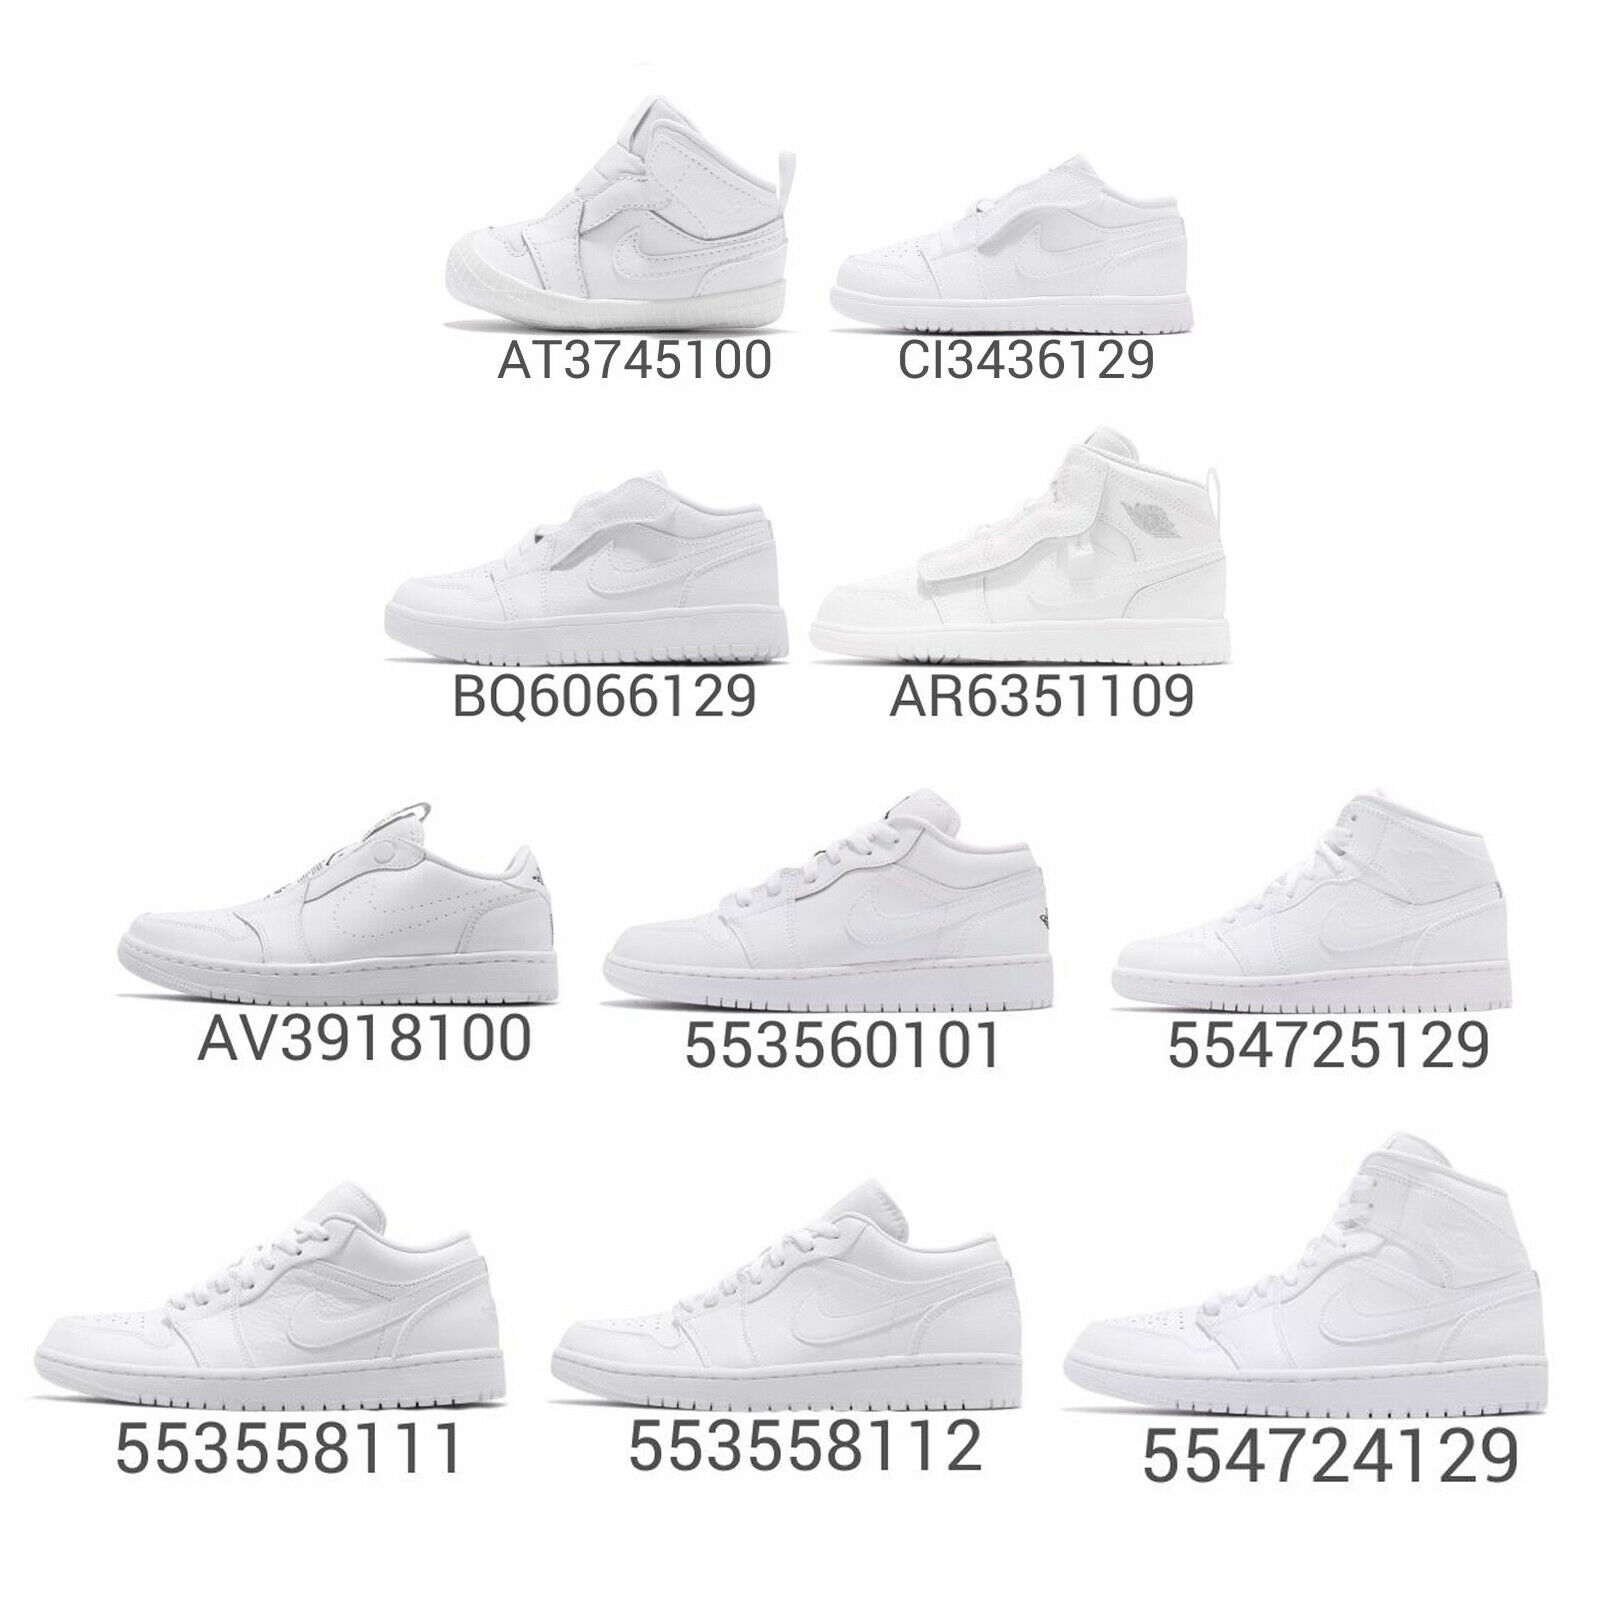 best website 9c67f 2d3cc Nike Air Jordan 1 Low Mid Trible White AJ1 I Men Women Kids Baby TD Shoes  Pick 1